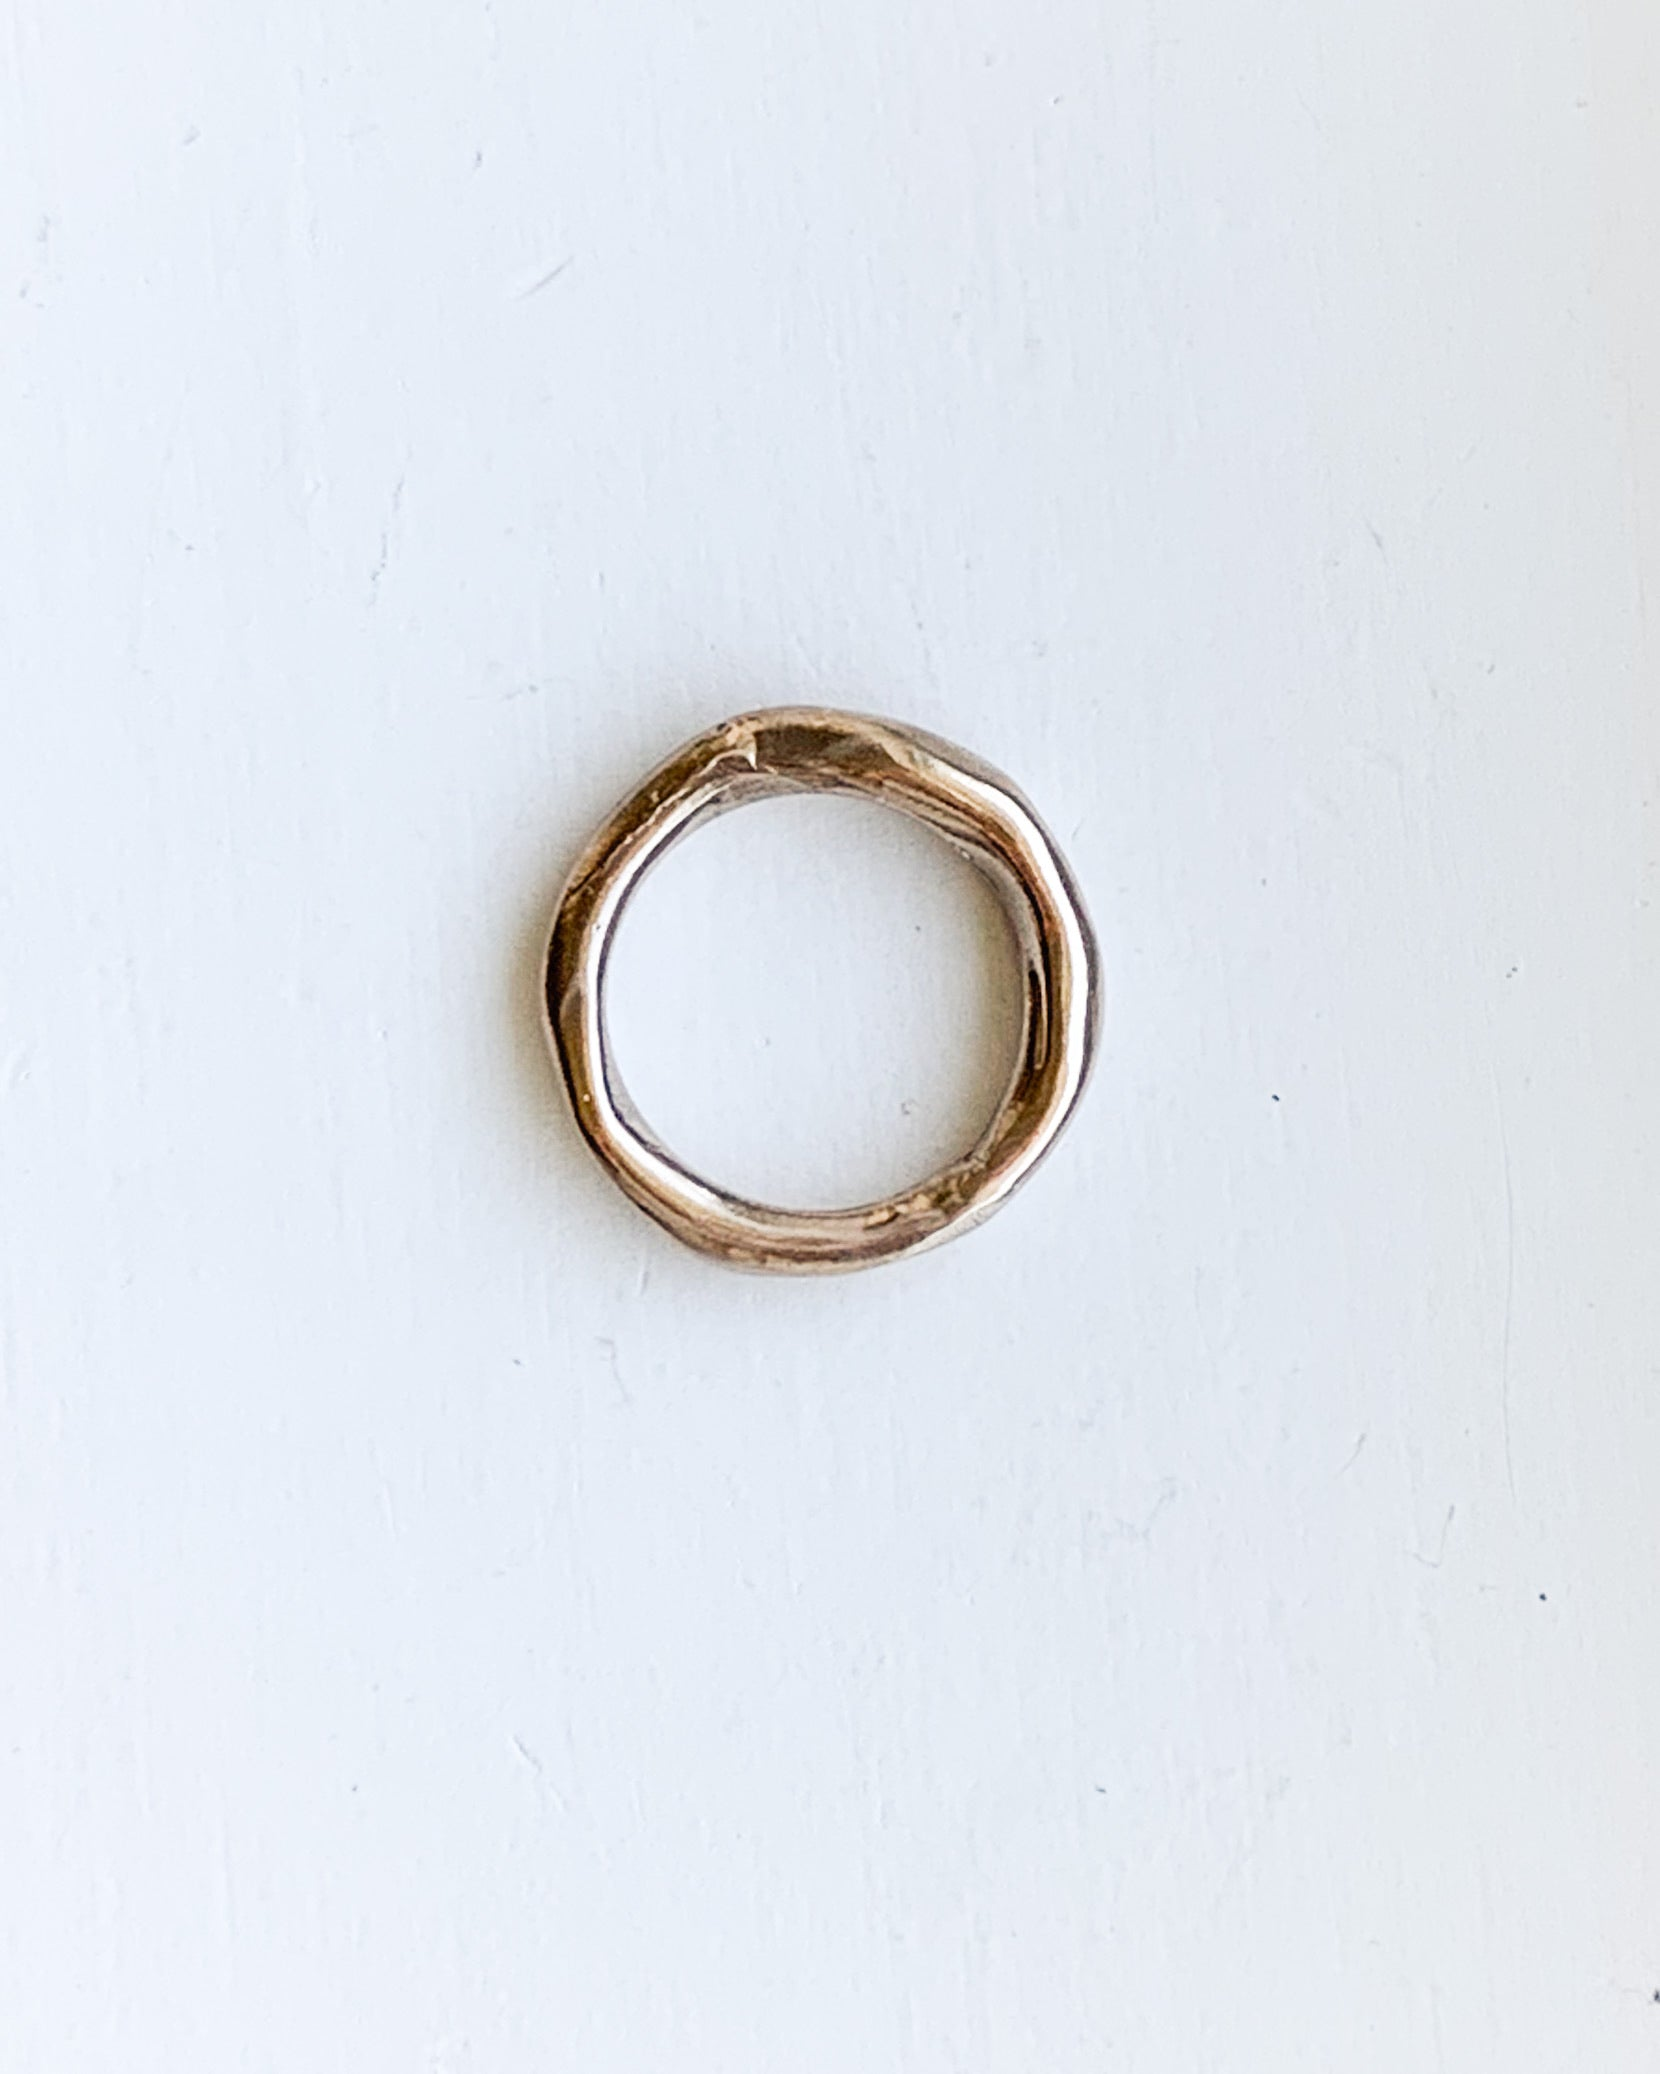 a hand formed bronze ring made from wax cast in metal shown on a white background